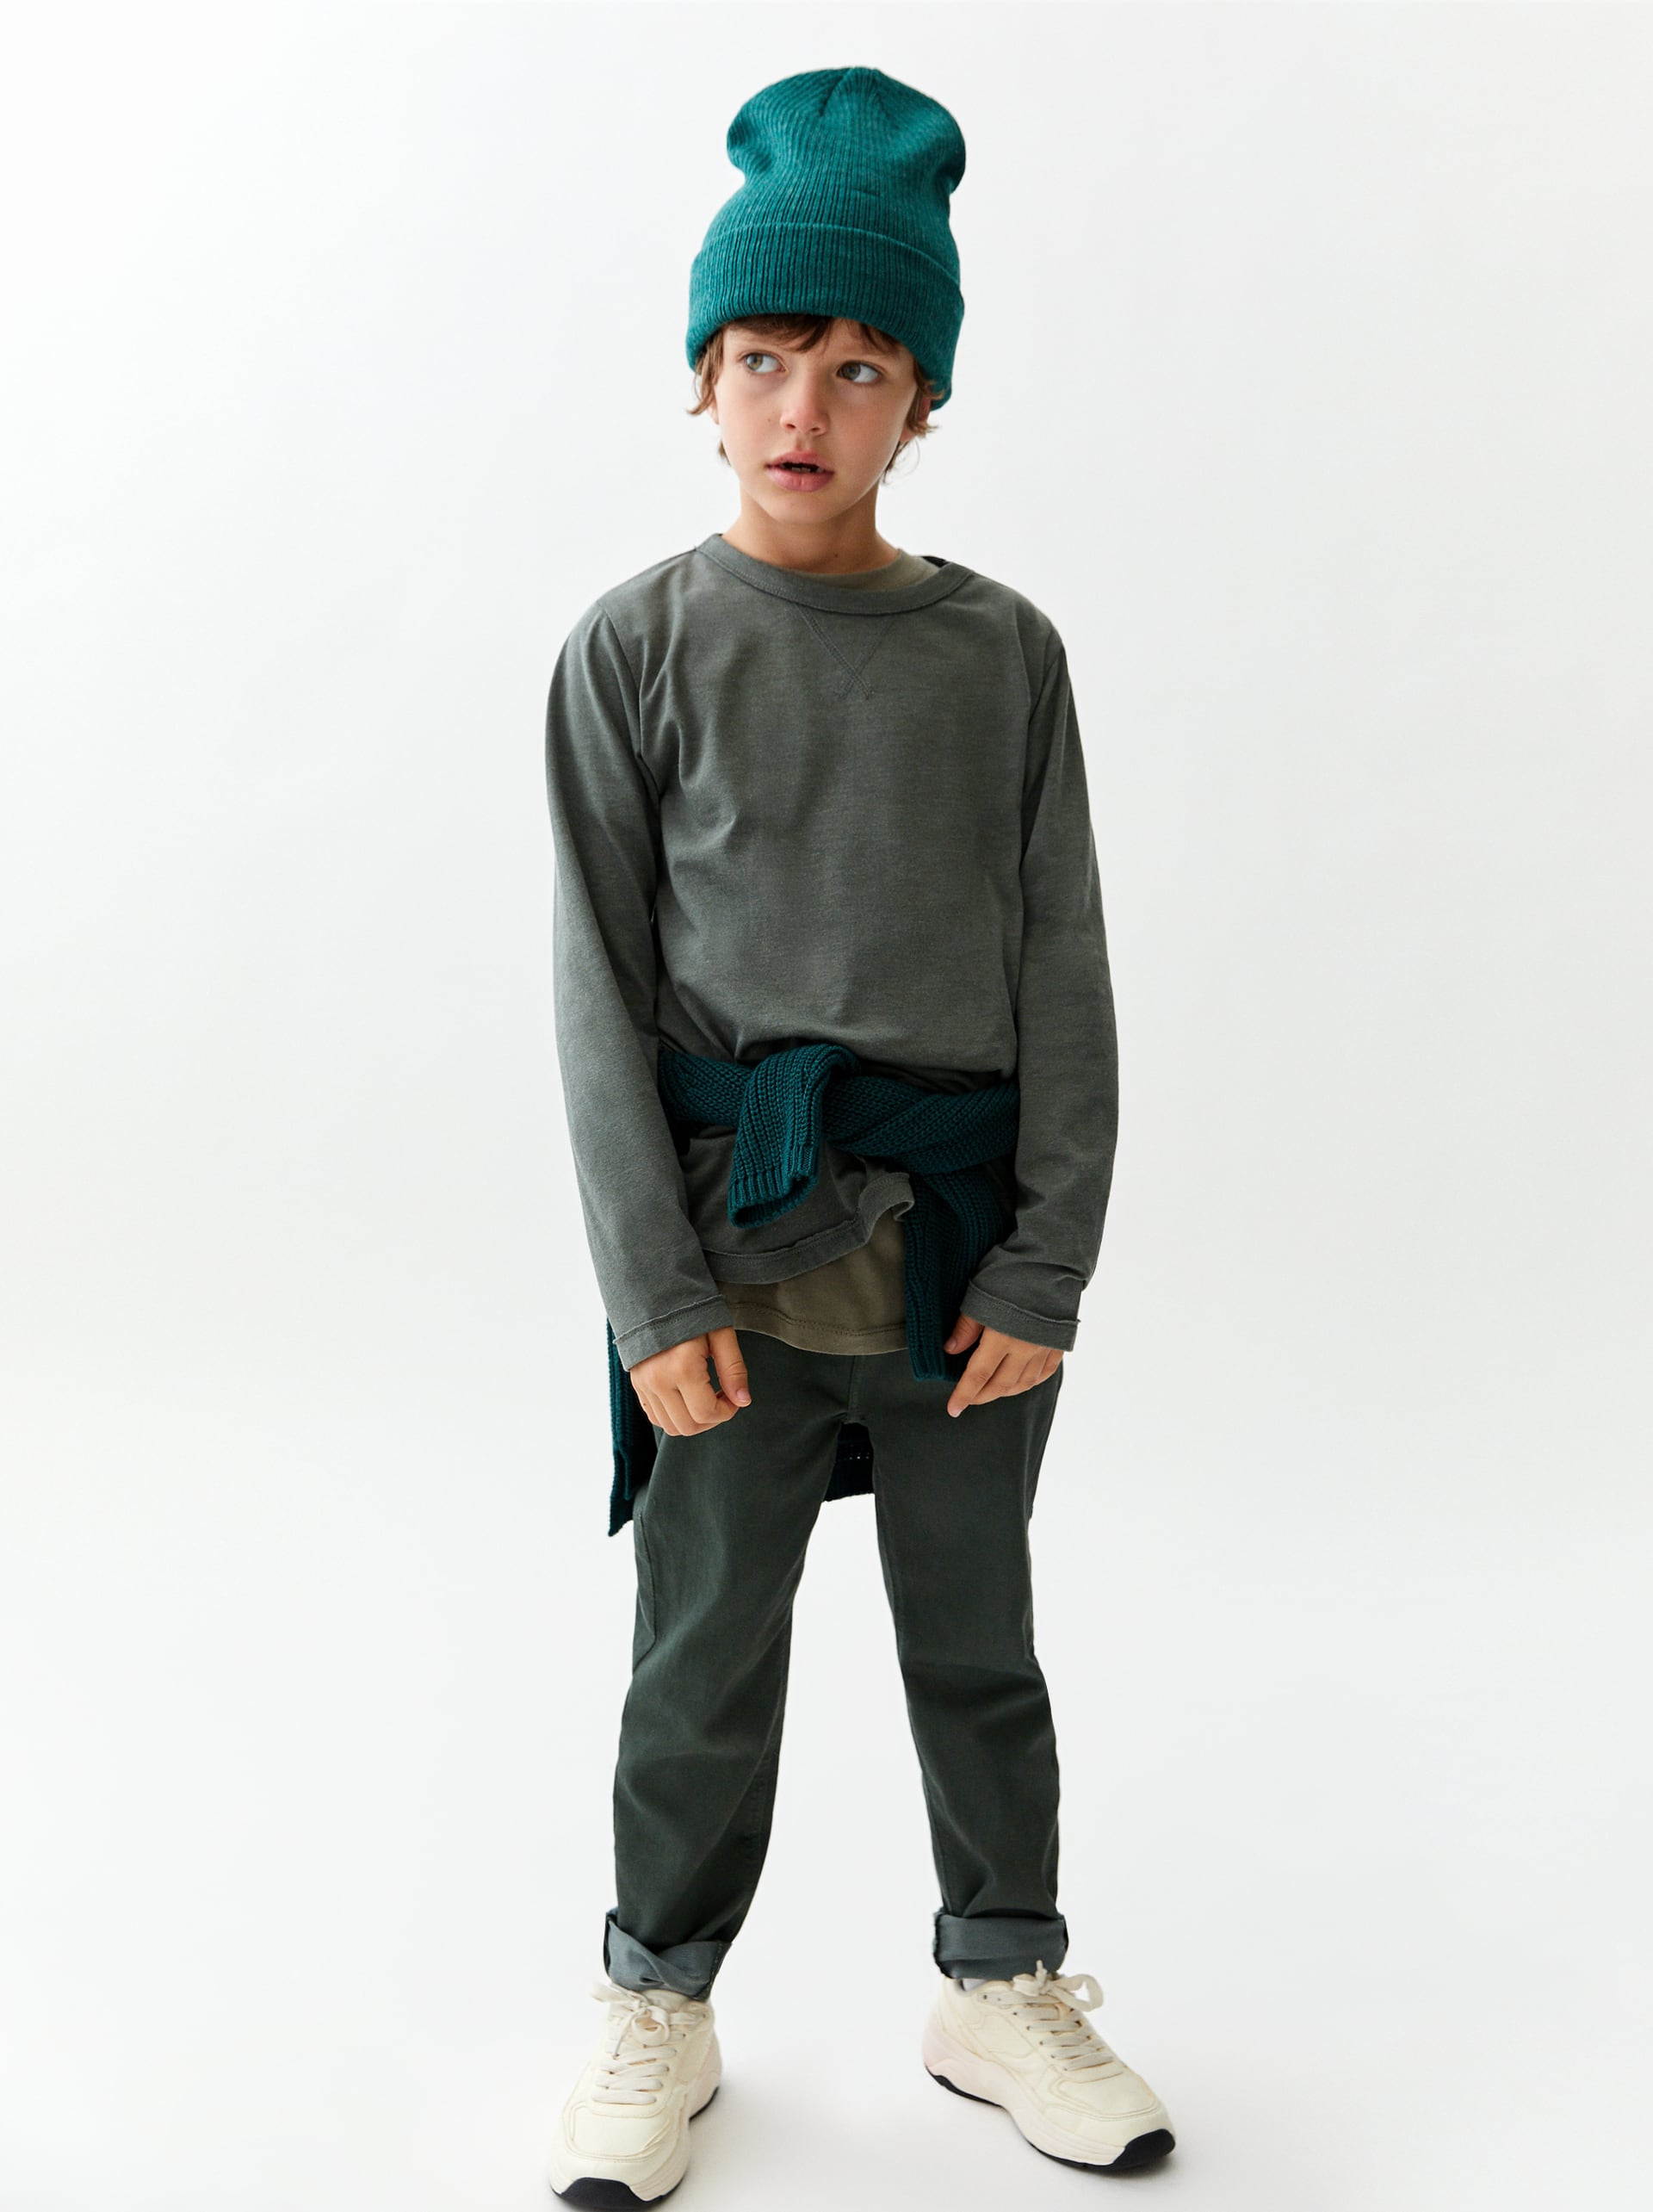 Chino Style Trousers AW 2018